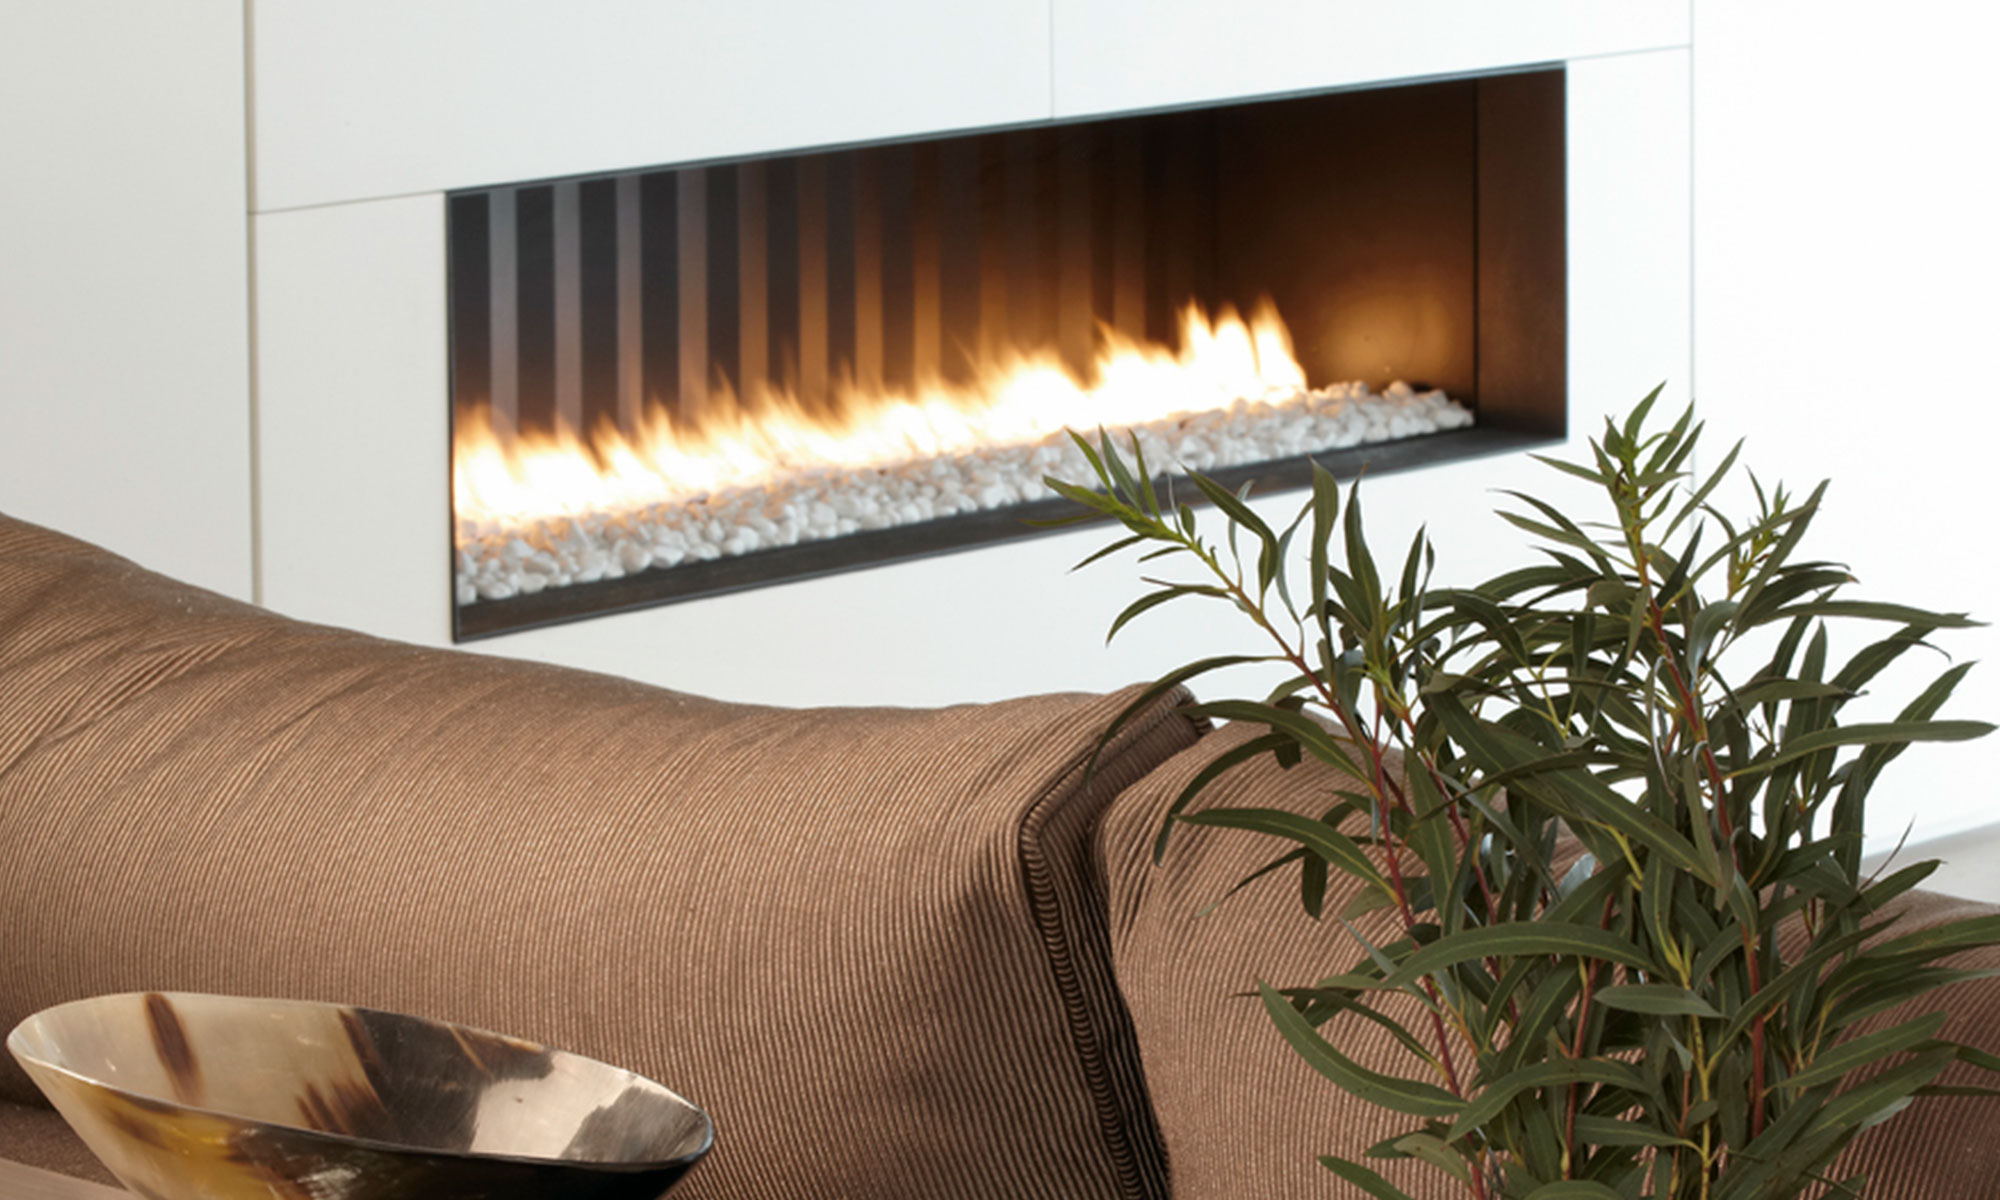 Fireplace design detail | Molins Design interior designers